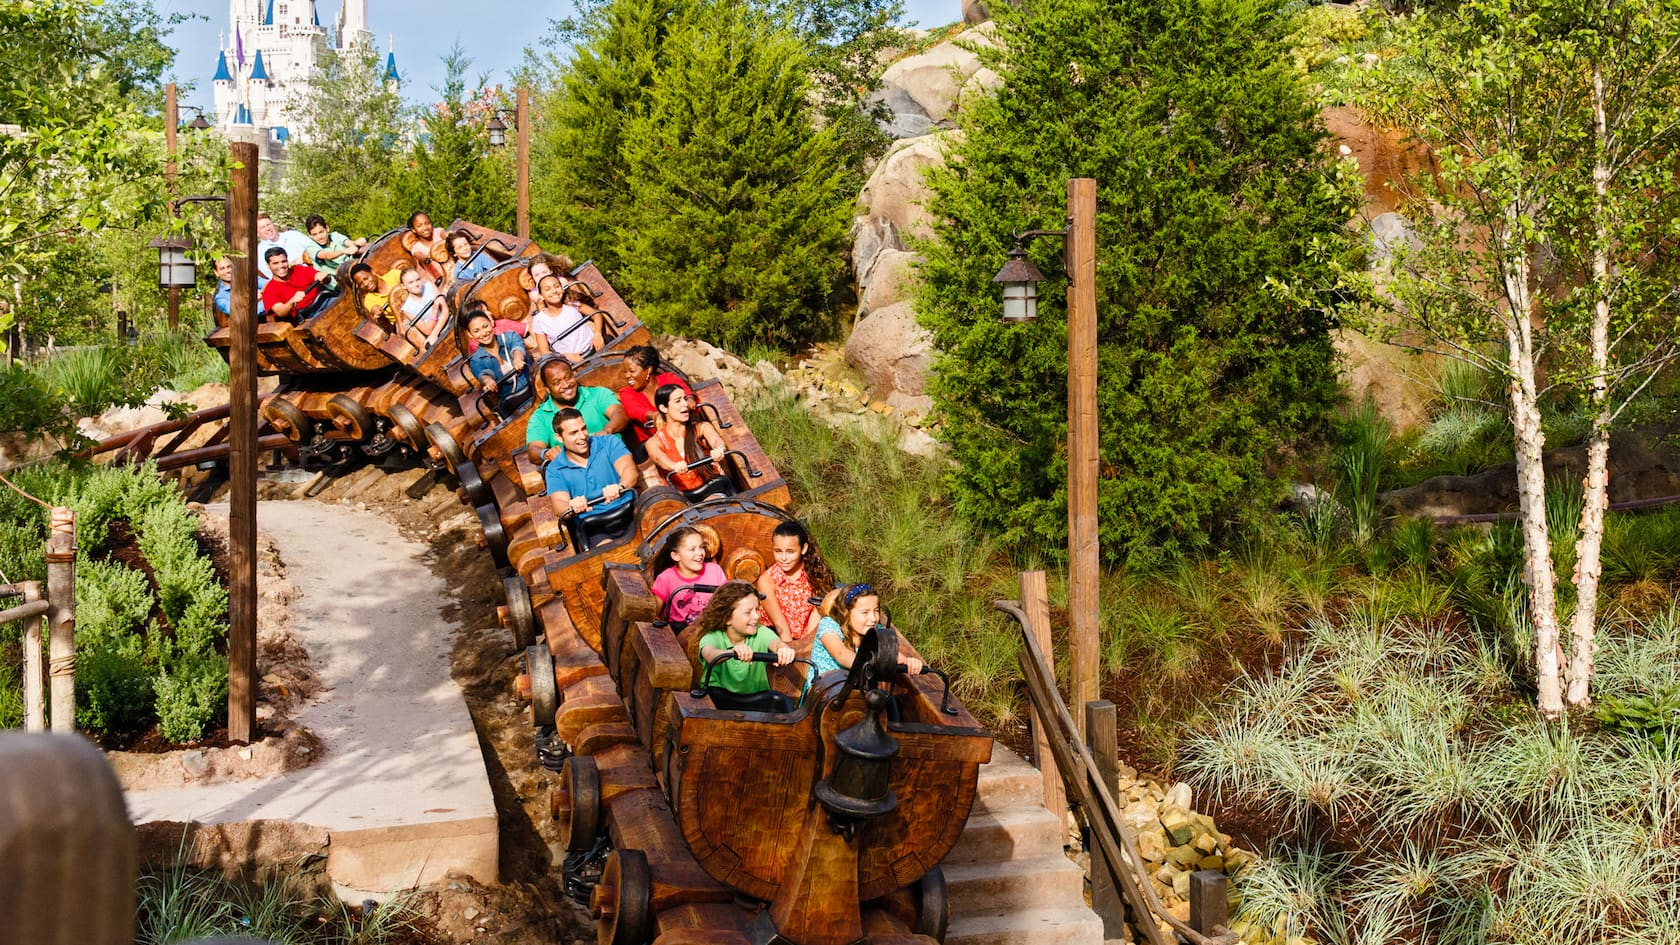 Seven Dwarfs Mine Train | Walt Disney World Resort